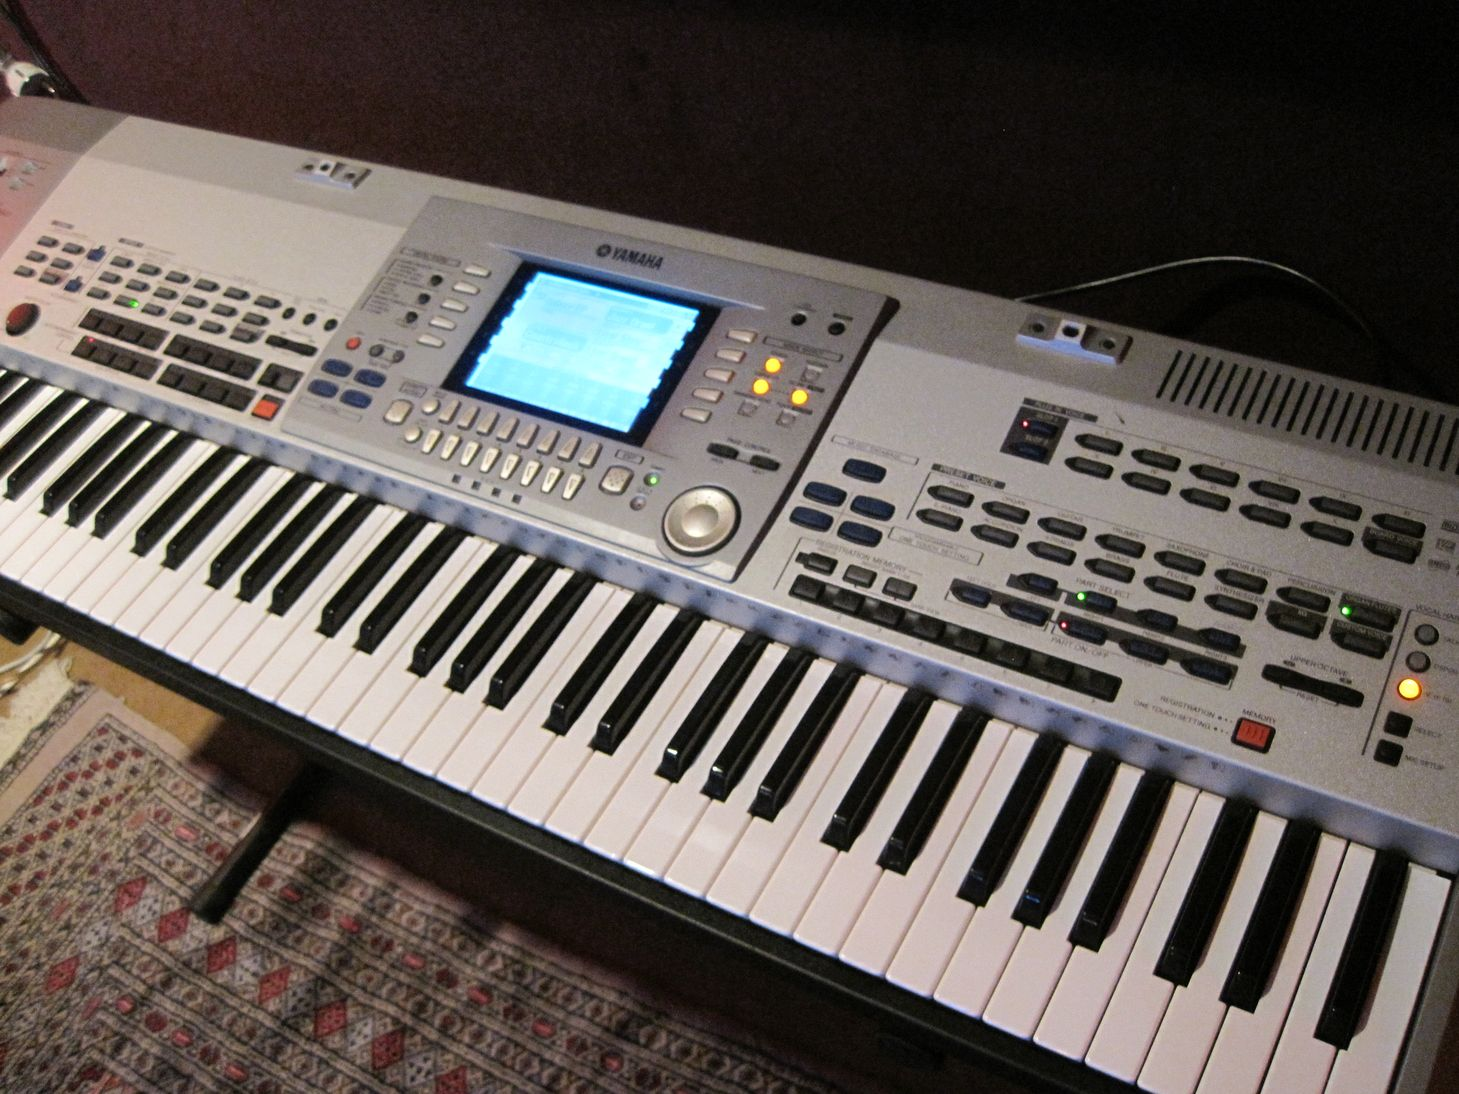 Yamaha psr 9000 pro hd image 155727 audiofanzine for Yamaha professional keyboard price